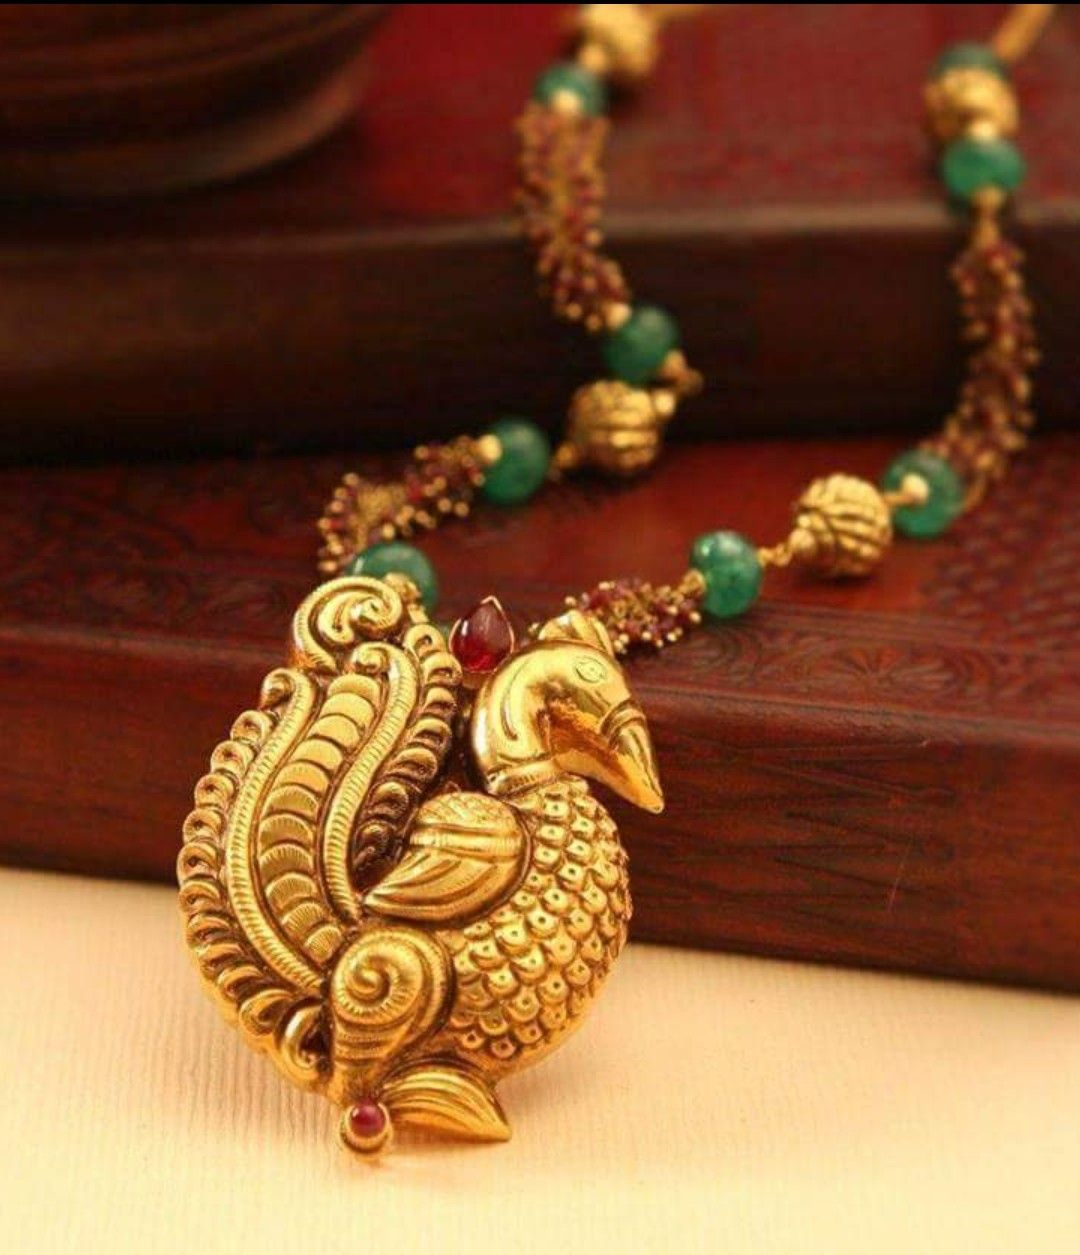 Pin by geeth gowda on gehne pinterest jewel gold jewellery and